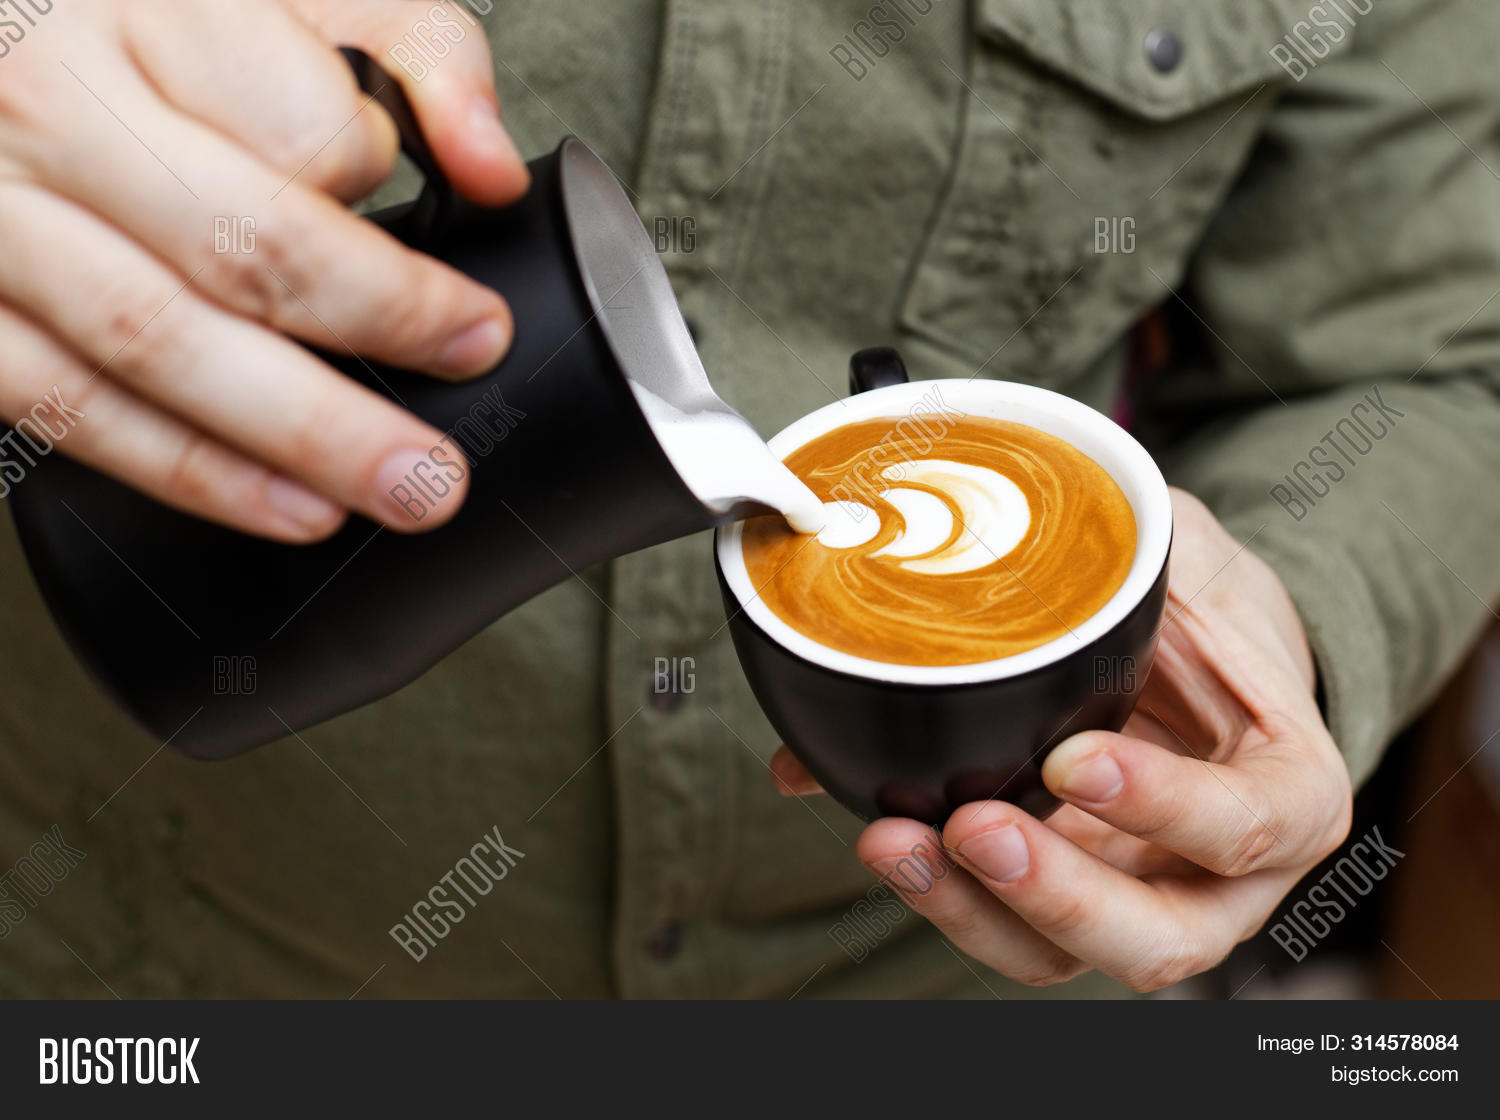 Barista holding a black cup in one hand and a black pitcher in other and pouring milk into a cup of cappuccino to make latte art. Shallow focus.